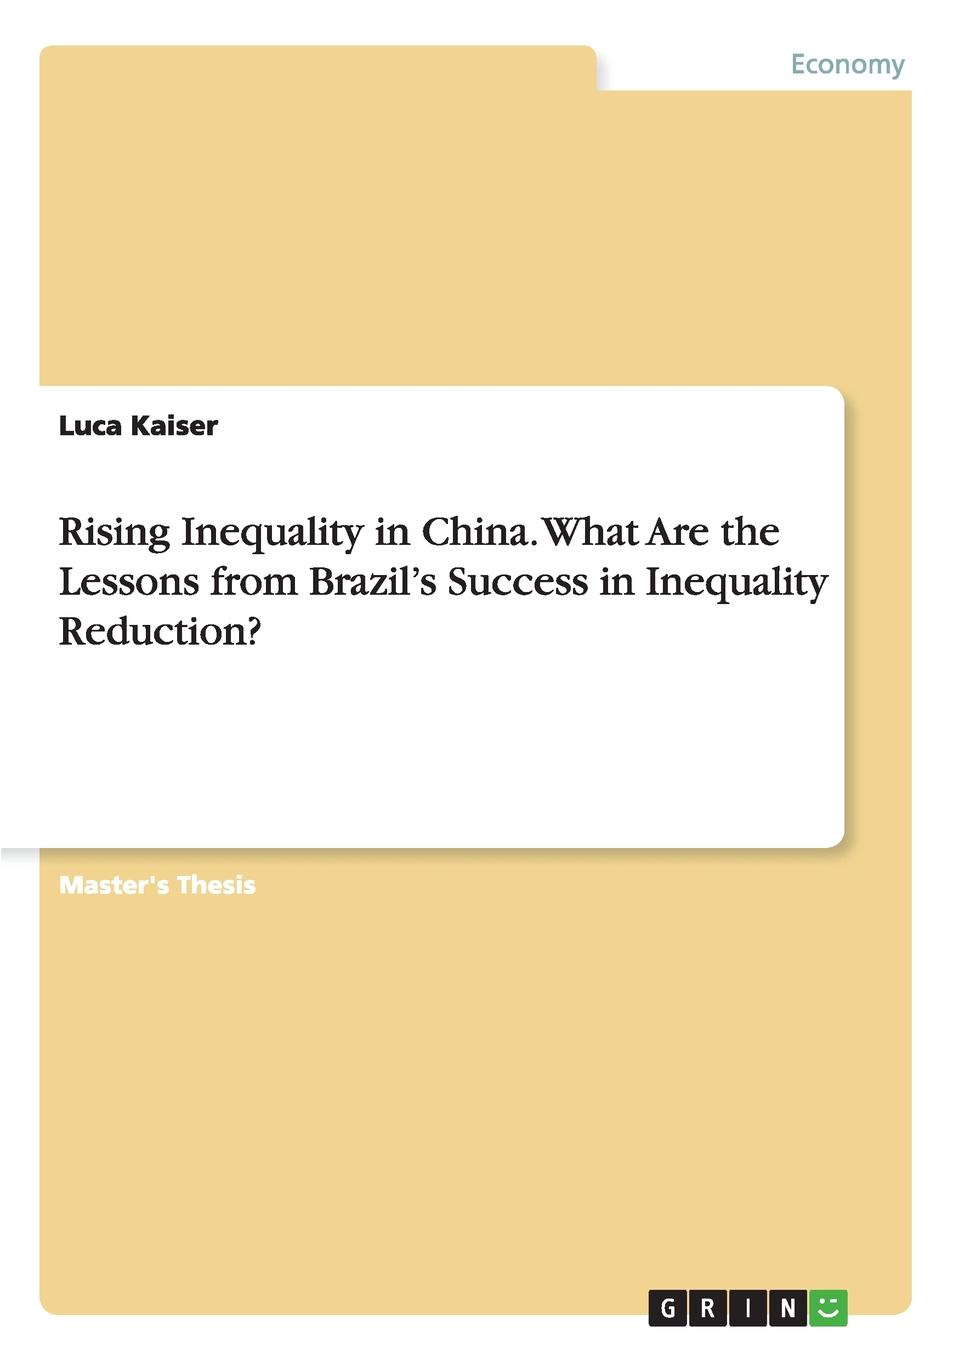 Luca Kaiser Rising Inequality in China. What Are the Lessons from Brazil.s Success in Inequality Reduction. how public policy impacts racial inequality